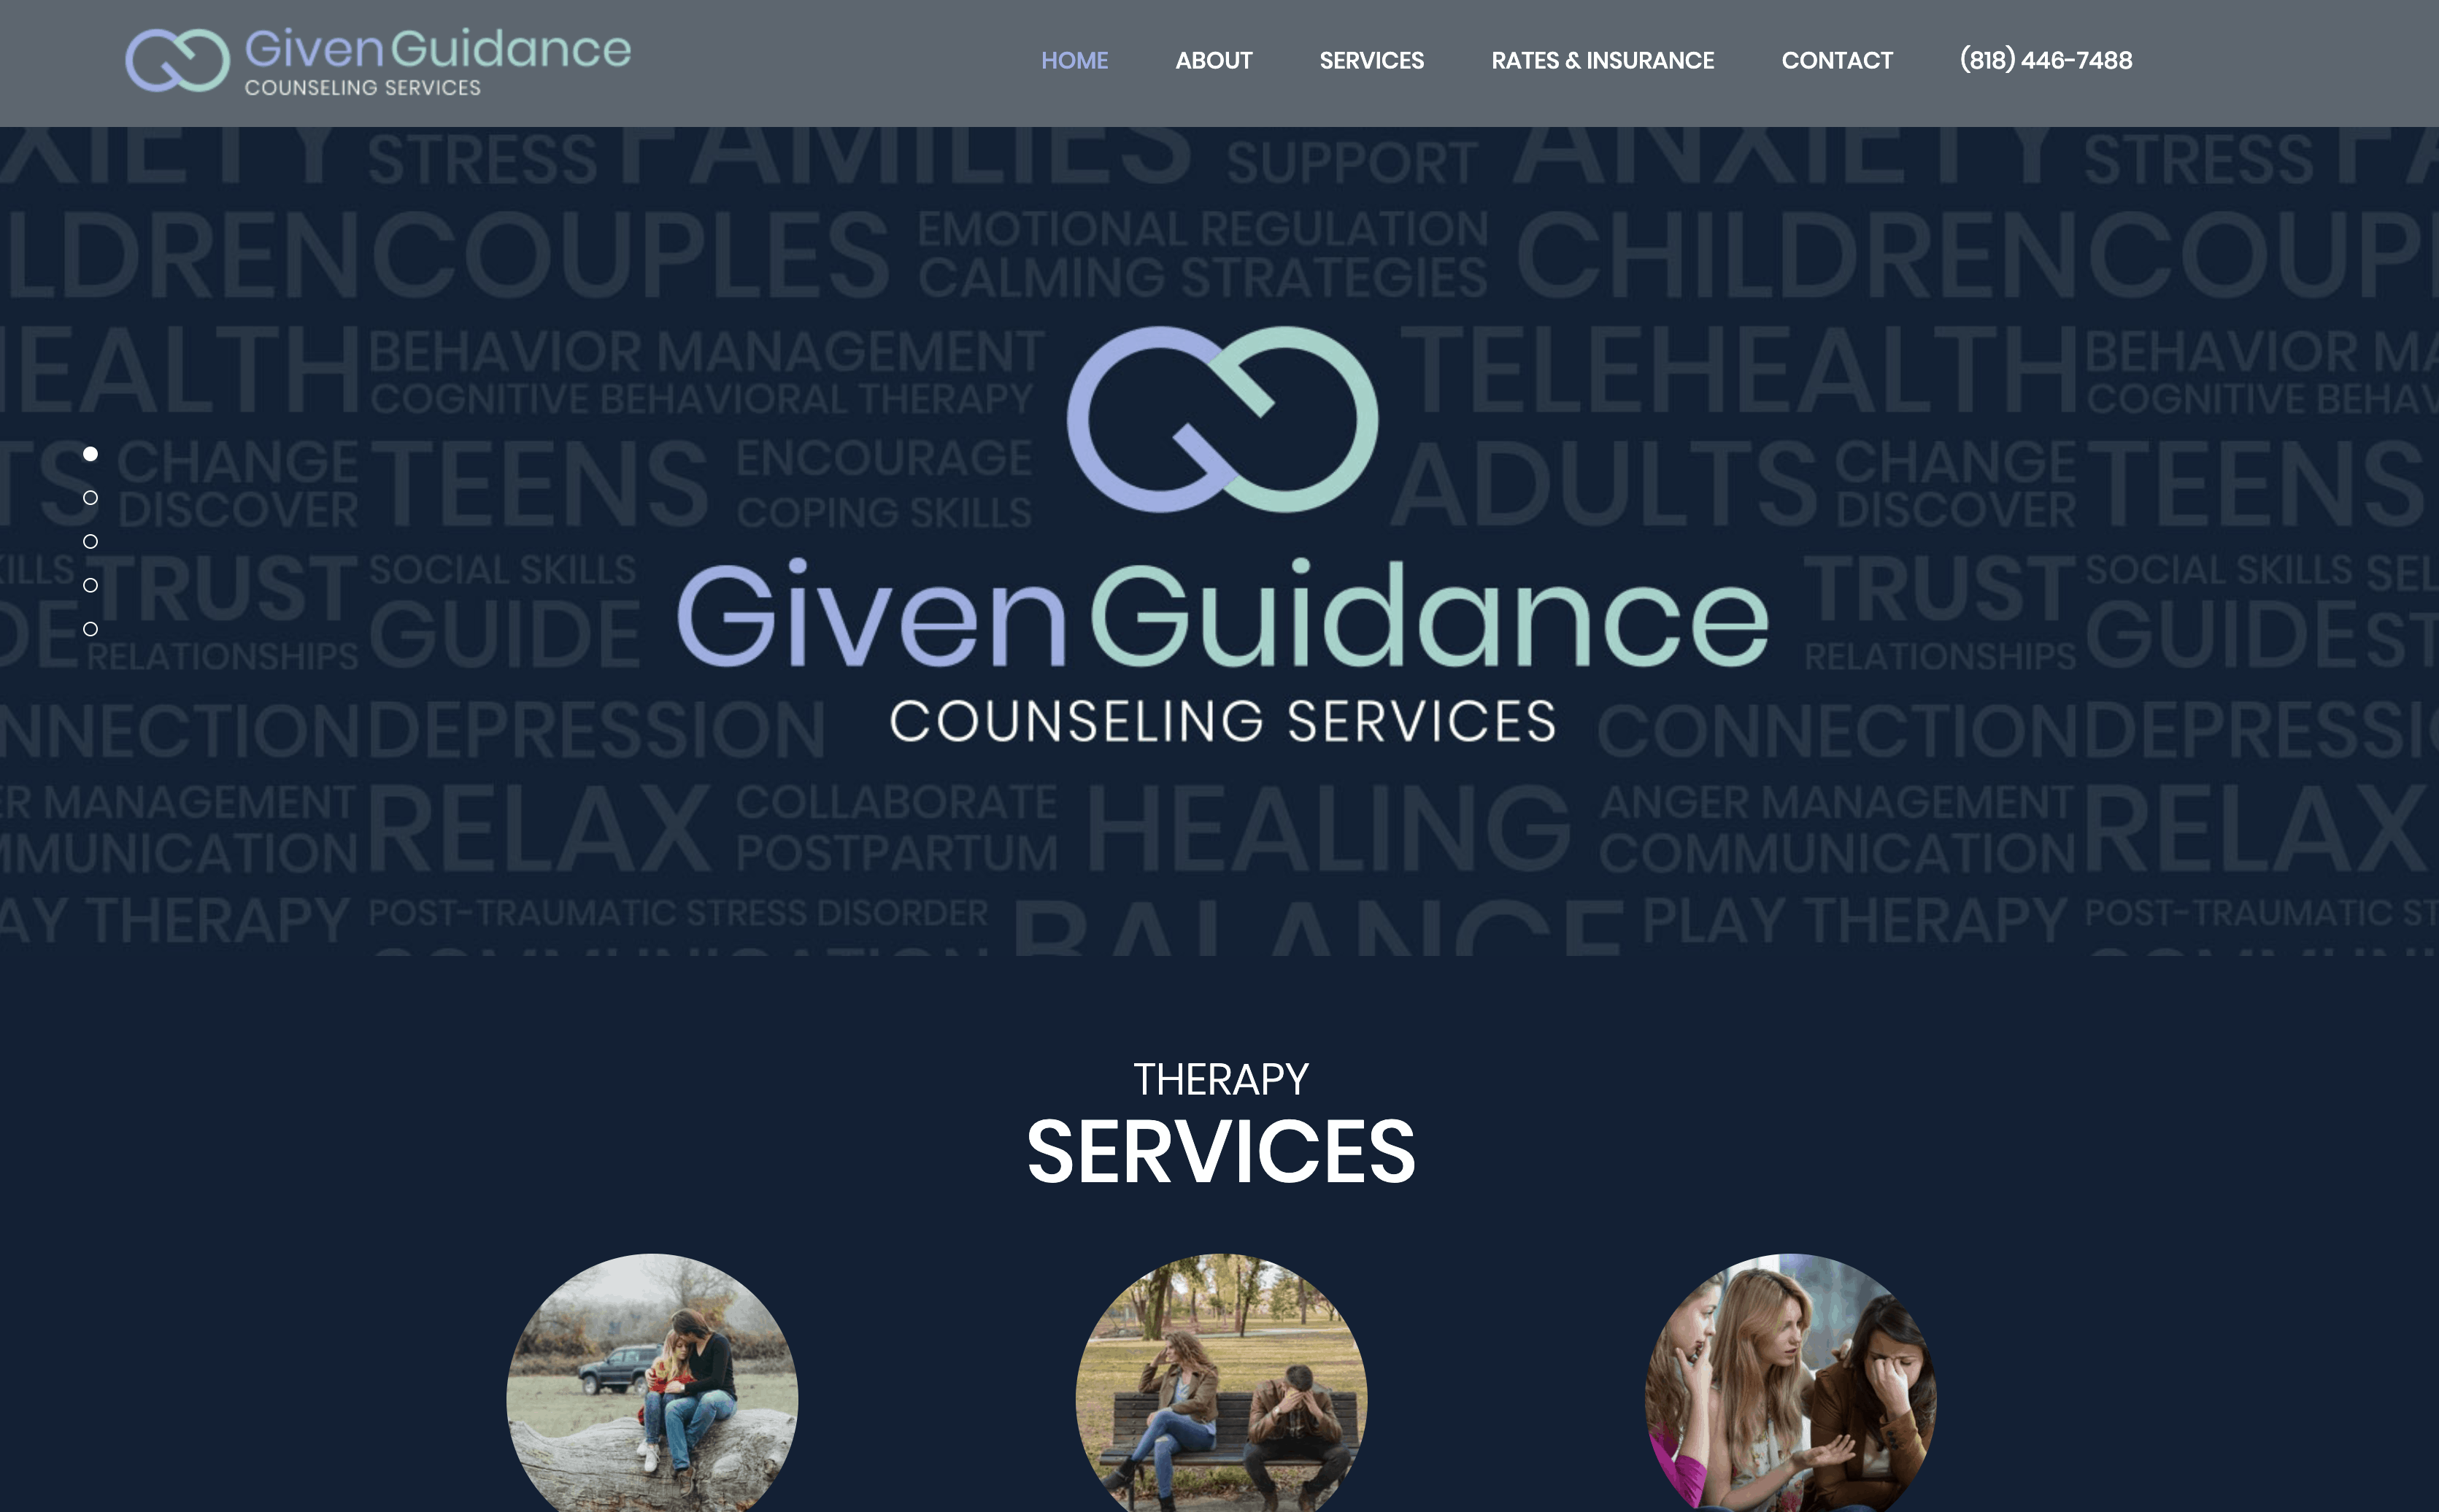 Given Guidance Homepage Design